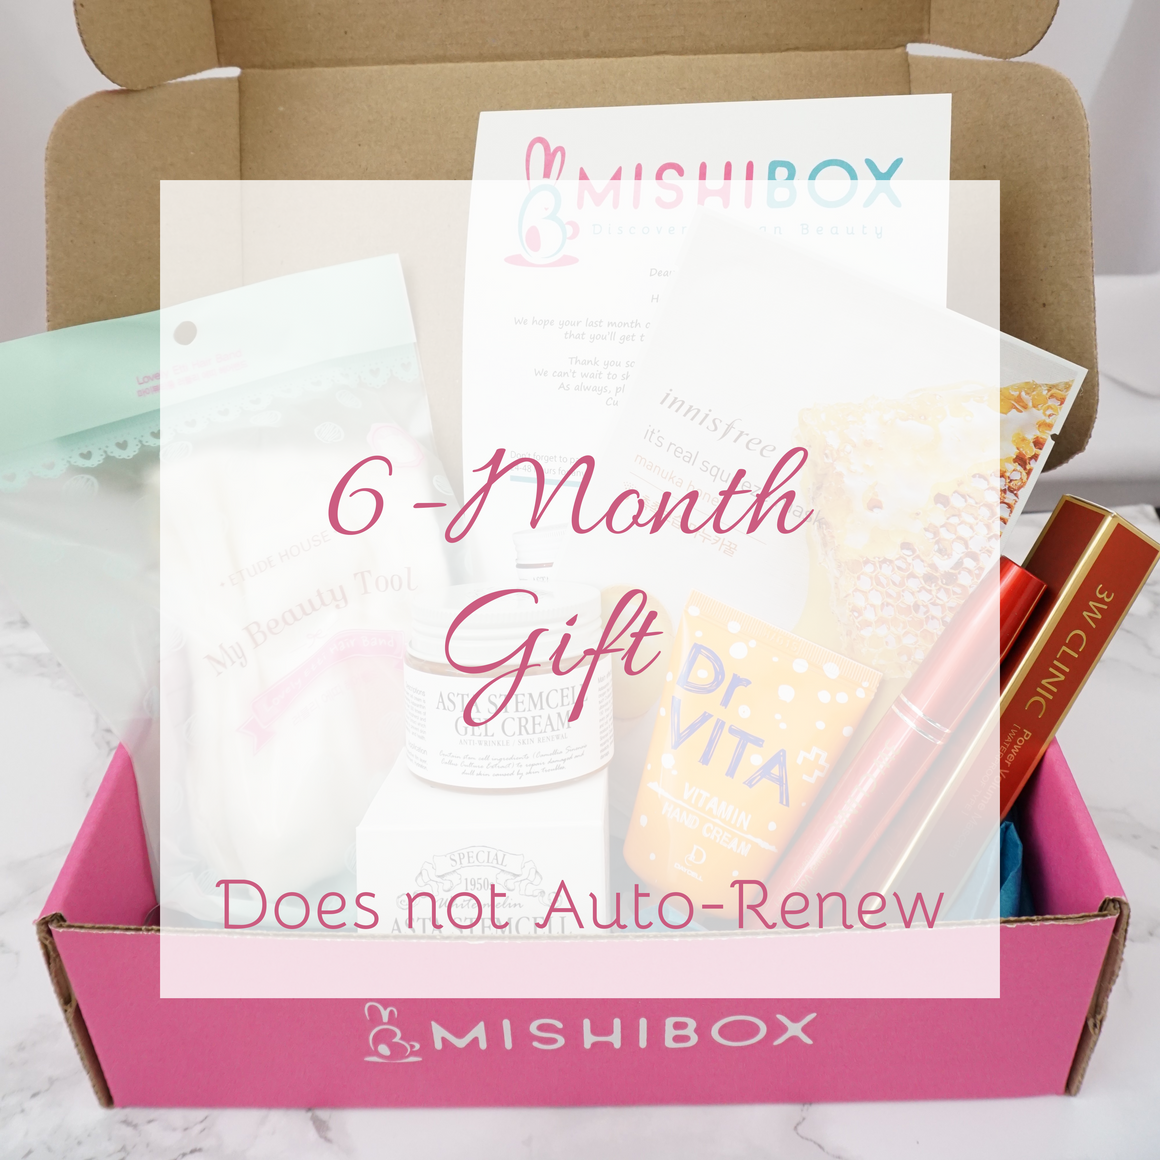 MISHIBOX GIFT Subscription - 6 Months - STARTS WITH MARCH BOX